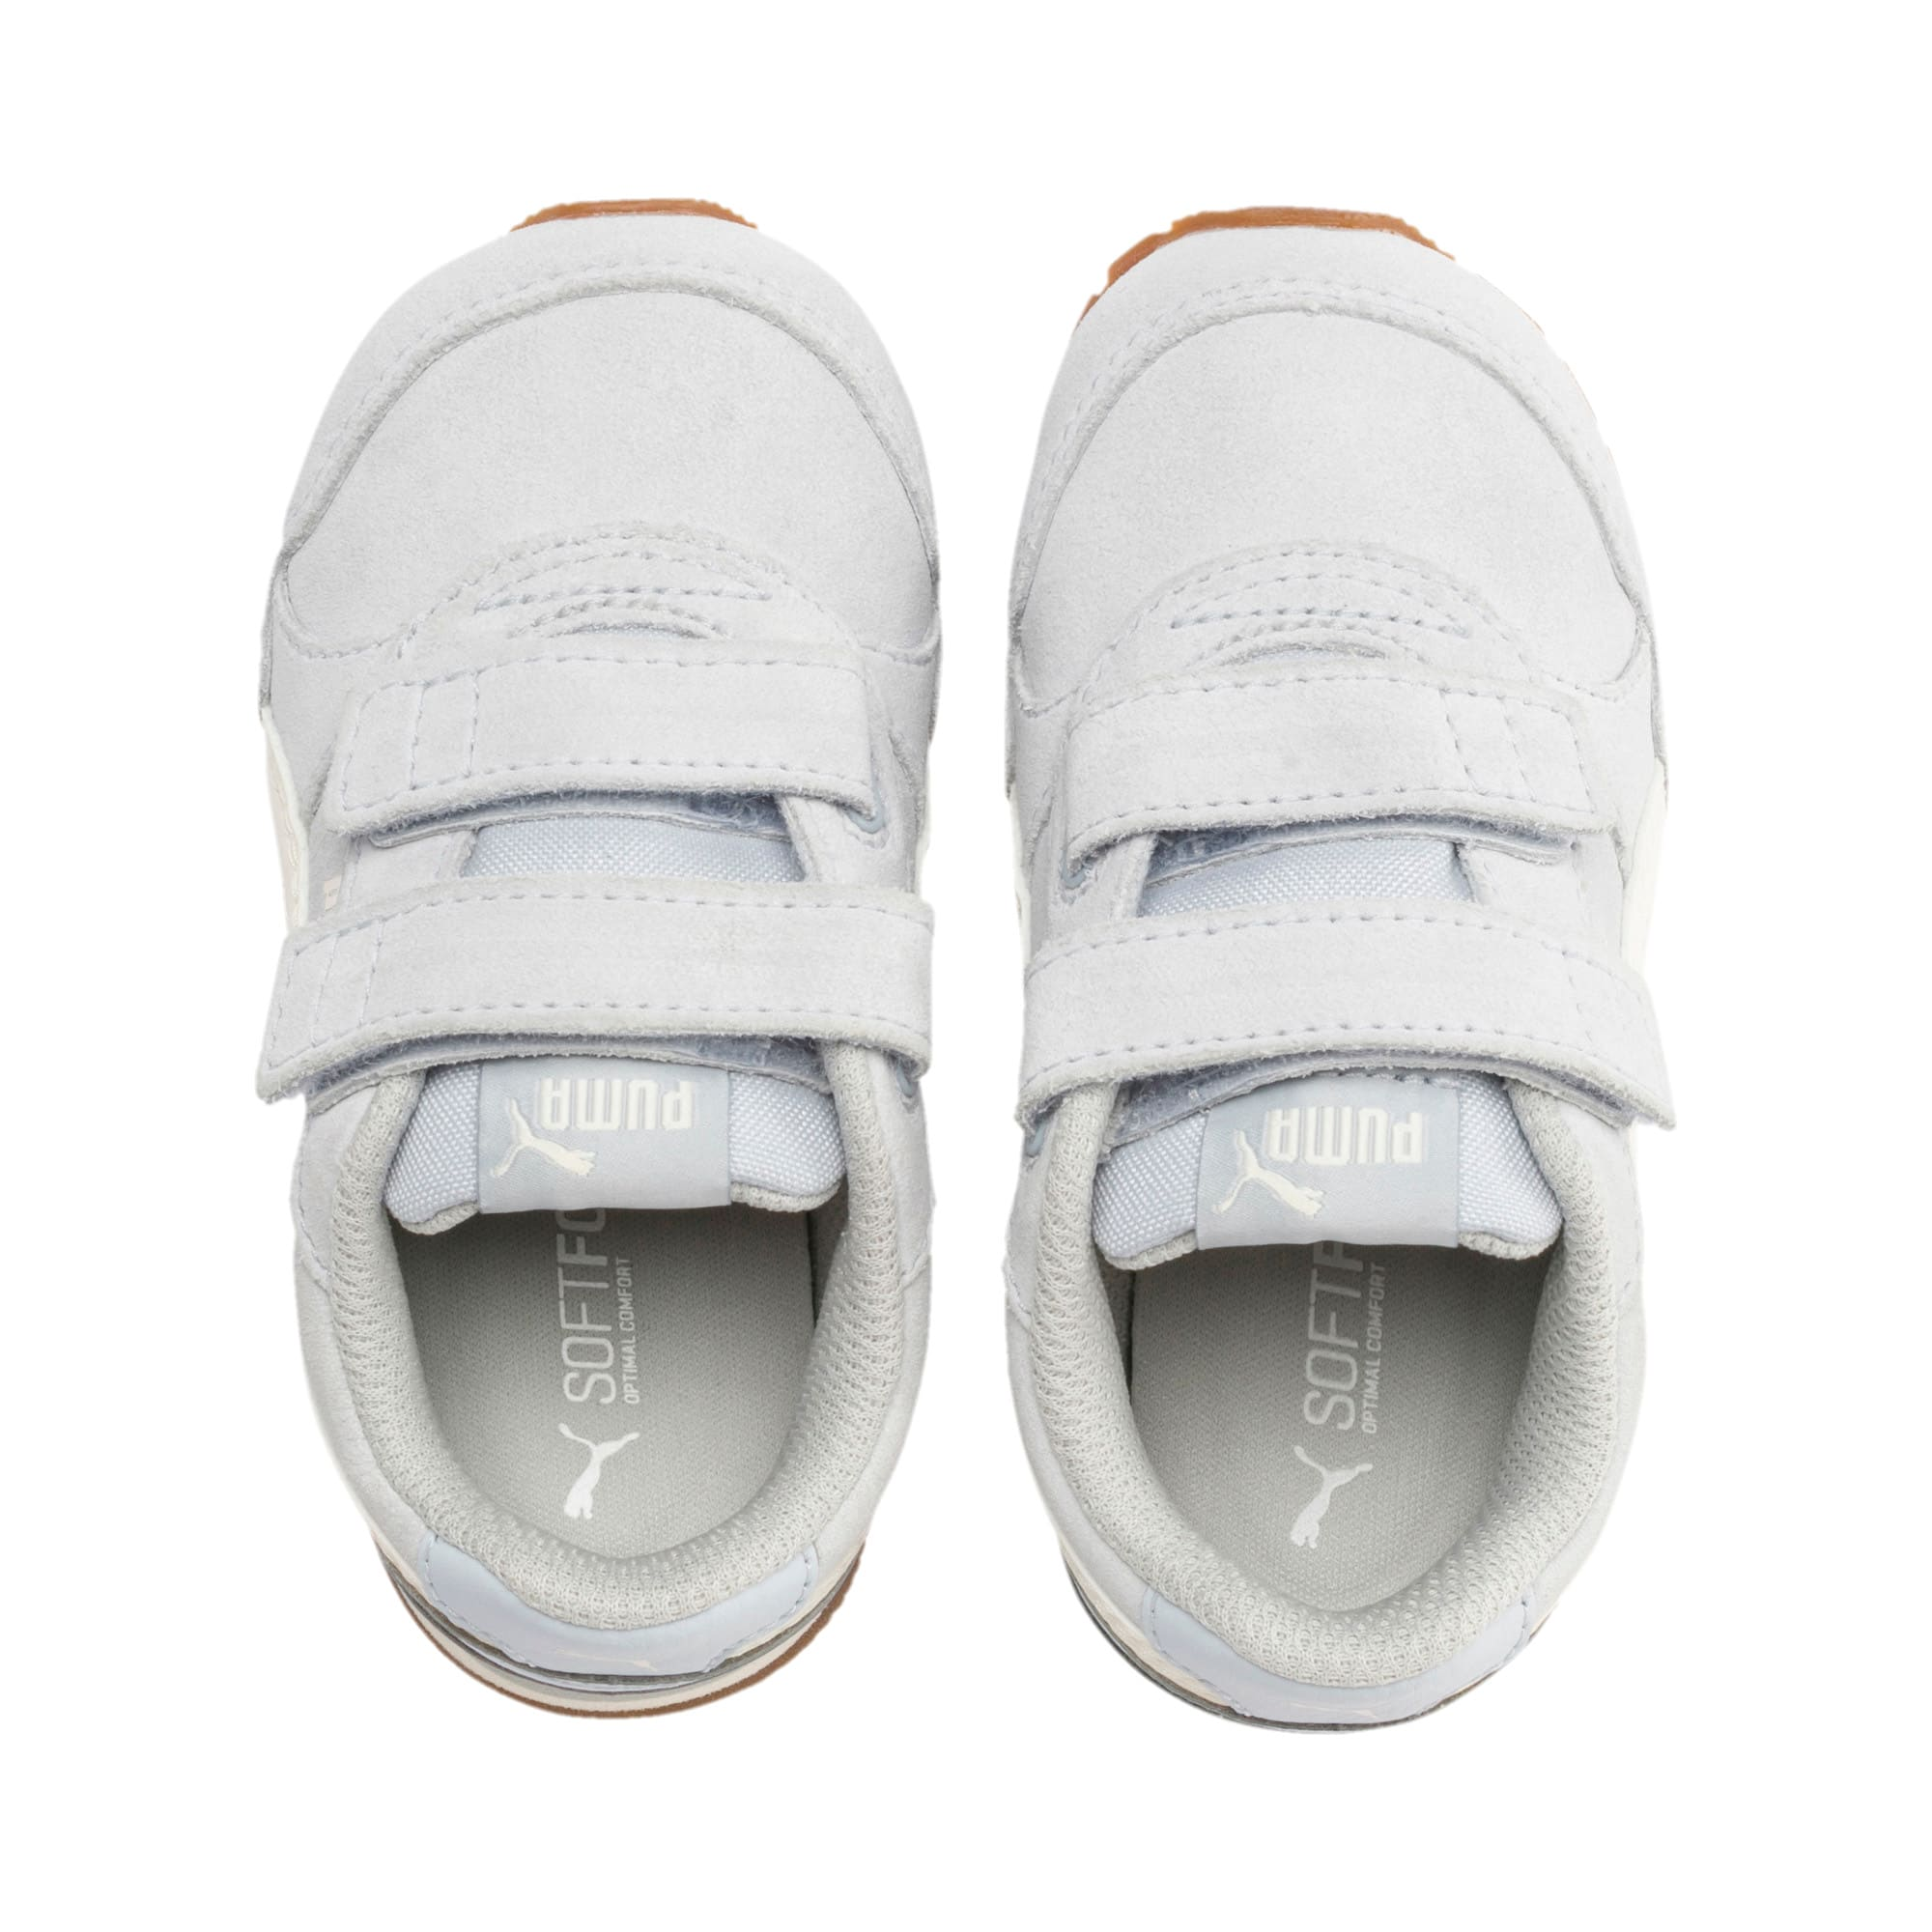 ST Runner v2 Suede Toddler Shoes, Heather-Whisper White, large